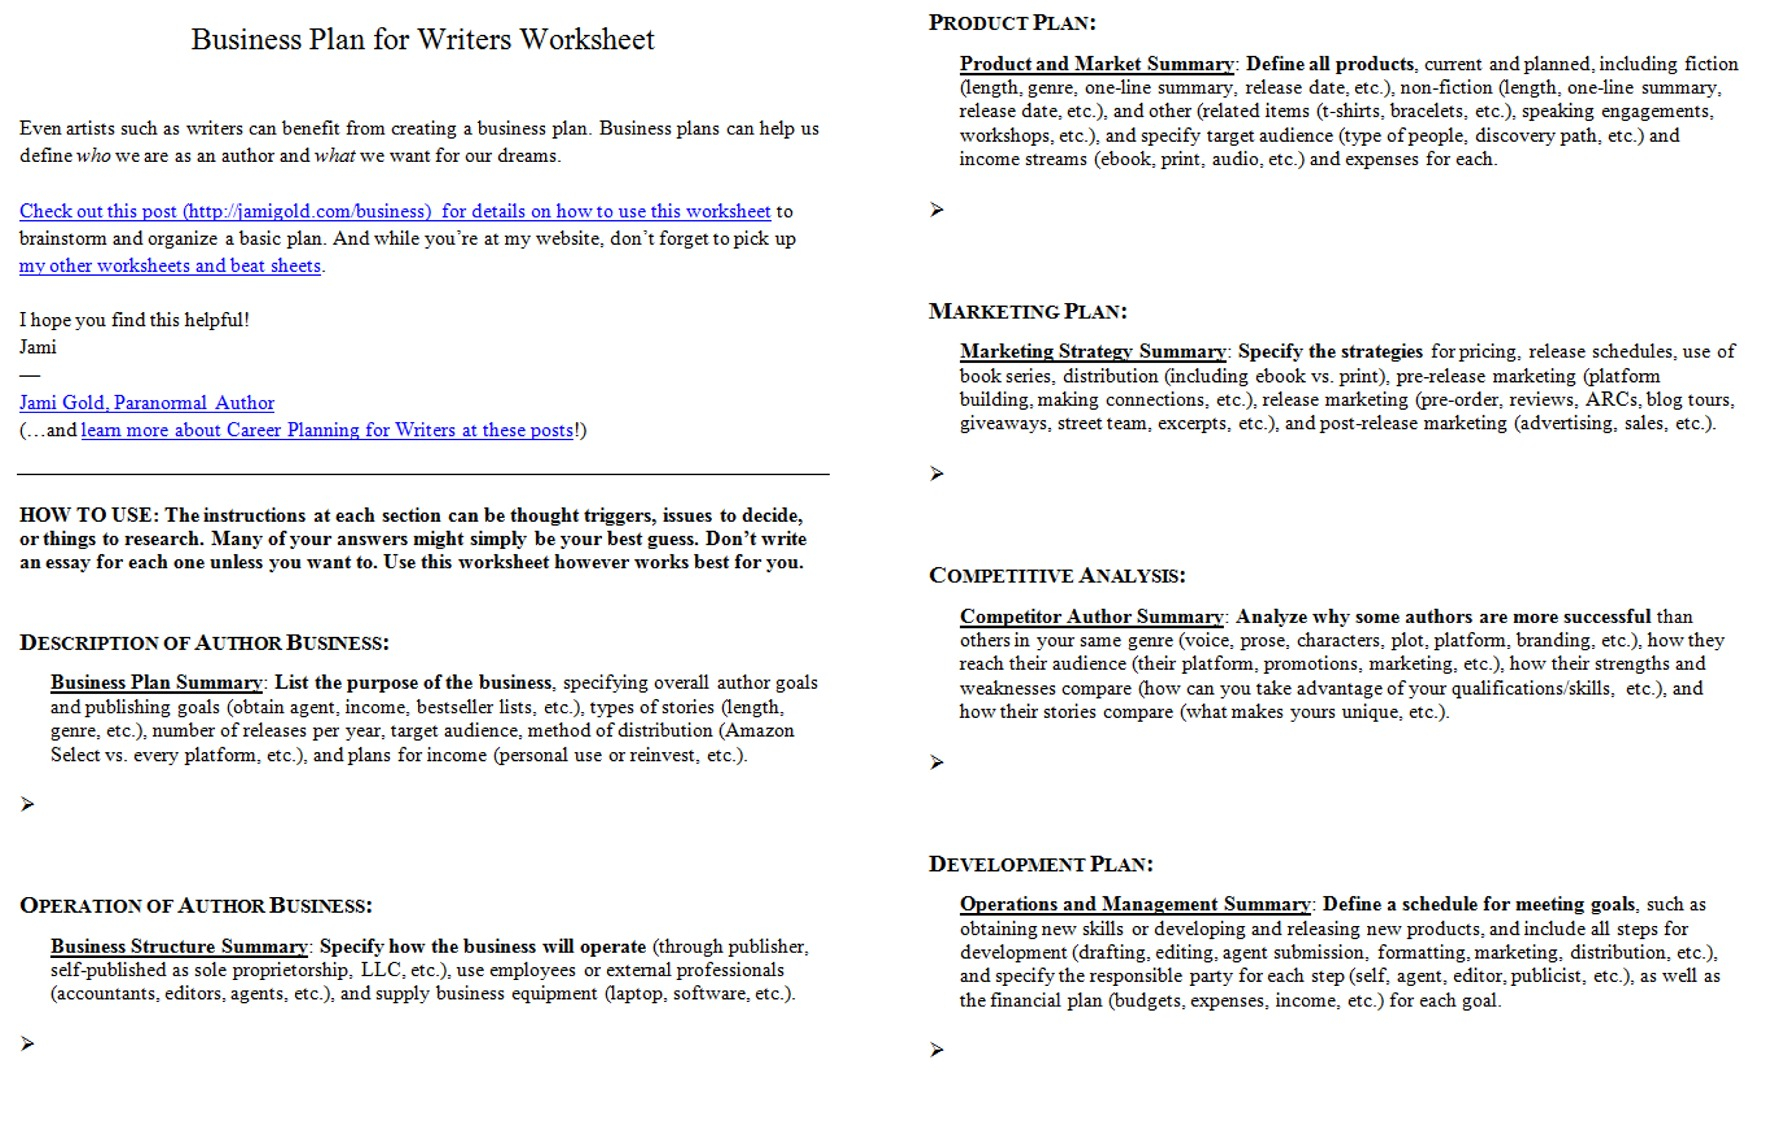 Weirdmailus  Seductive Worksheets For Writers  Jami Gold Paranormal Author With Great Screen Shot Of Both Pages Of The Business Plan For Writers Worksheet With Breathtaking Grade  French Immersion Worksheets Also Show Not Tell Worksheets In Addition Compound Words Worksheet Grade  And Ks Adjectives Worksheets As Well As Learn To Draw Worksheets Additionally A Or An Worksheets From Jamigoldcom With Weirdmailus  Great Worksheets For Writers  Jami Gold Paranormal Author With Breathtaking Screen Shot Of Both Pages Of The Business Plan For Writers Worksheet And Seductive Grade  French Immersion Worksheets Also Show Not Tell Worksheets In Addition Compound Words Worksheet Grade  From Jamigoldcom